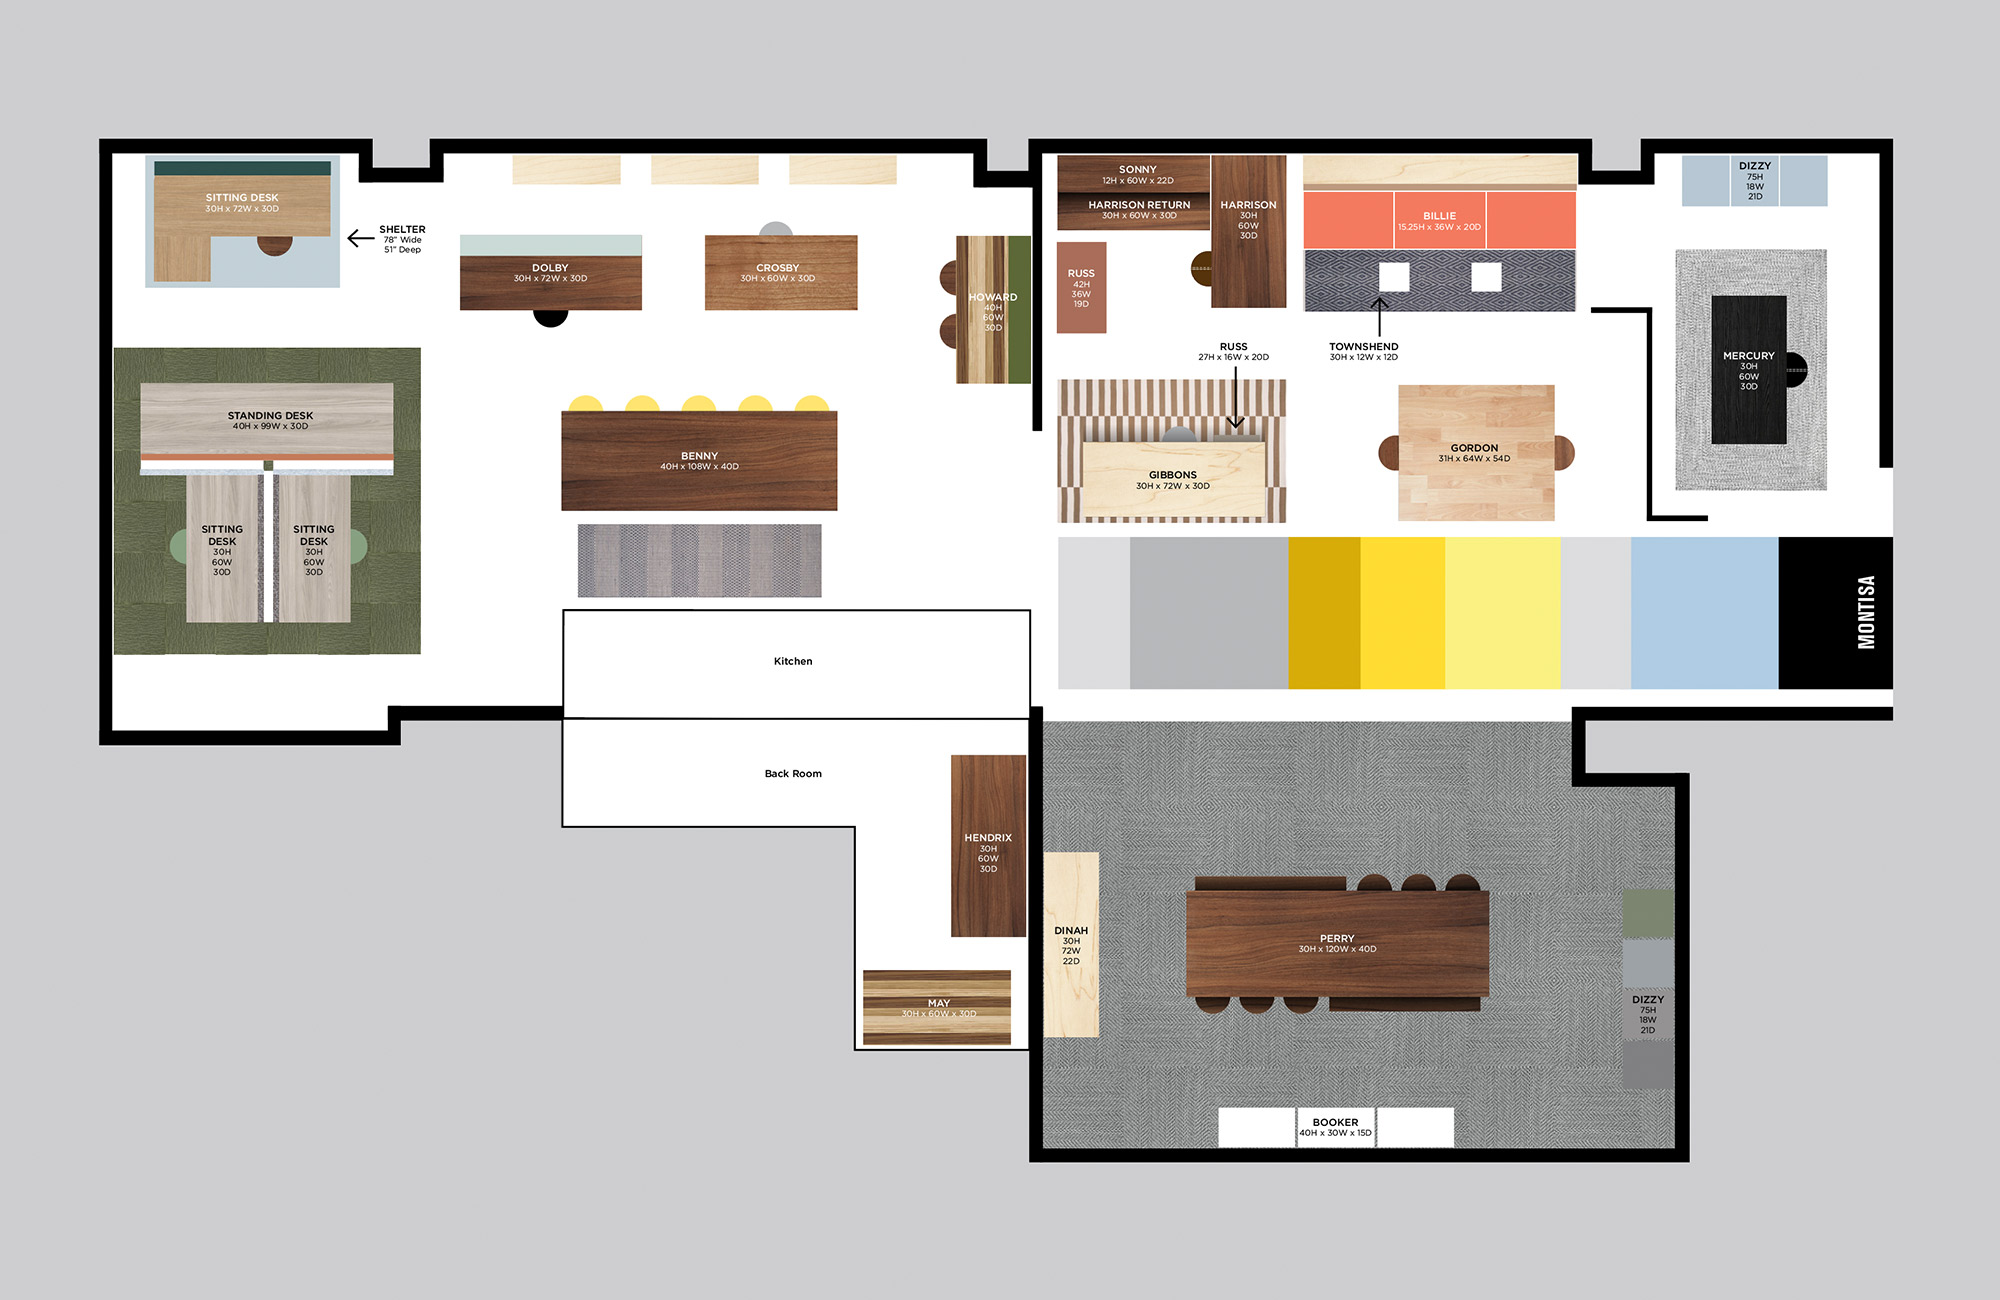 Floor plan of showroom.